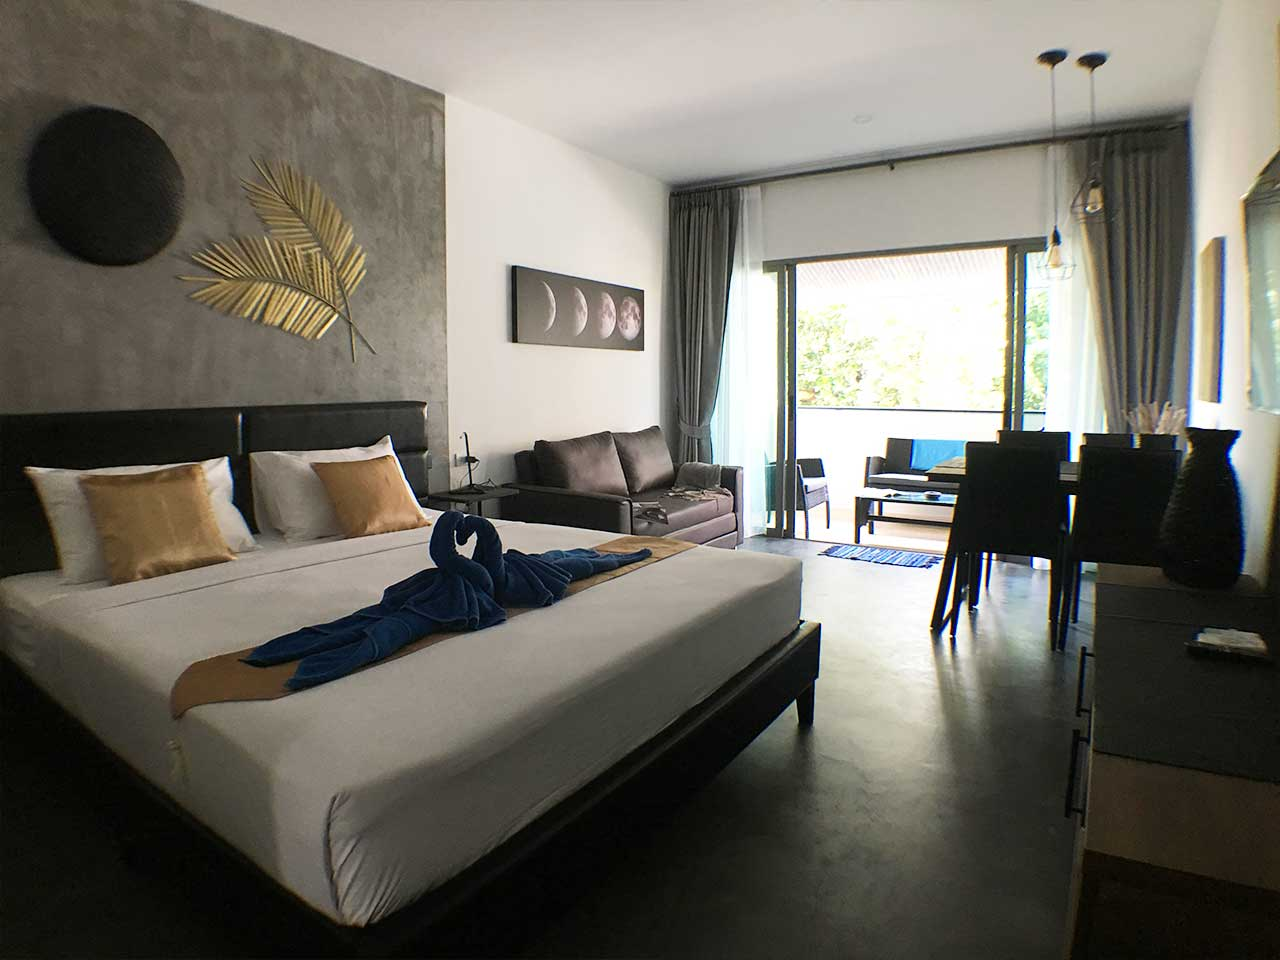 maphrao-resort-kamala-beach-phuket-rooms-interior-STUDIO-23-APARTMENT-12